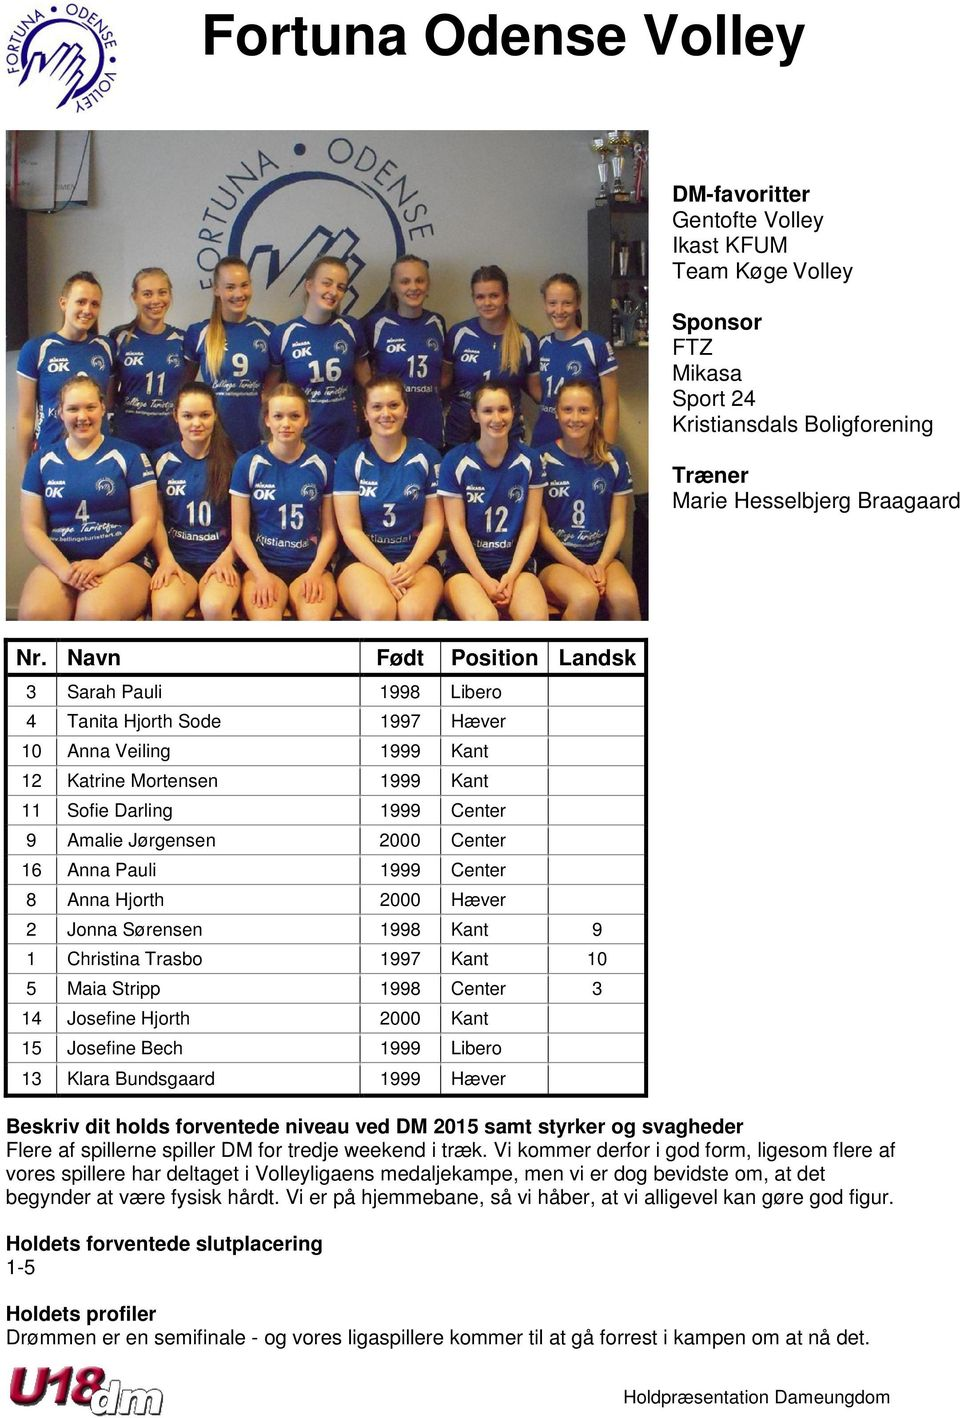 Christina Trasbo 1997 Kant 10 5 Maia Stripp 1998 Center 3 14 Josefine Hjorth 2000 Kant 15 Josefine Bech 1999 Libero 13 Klara Bundsgaard 1999 Hæver Flere af spillerne spiller DM for tredje weekend i